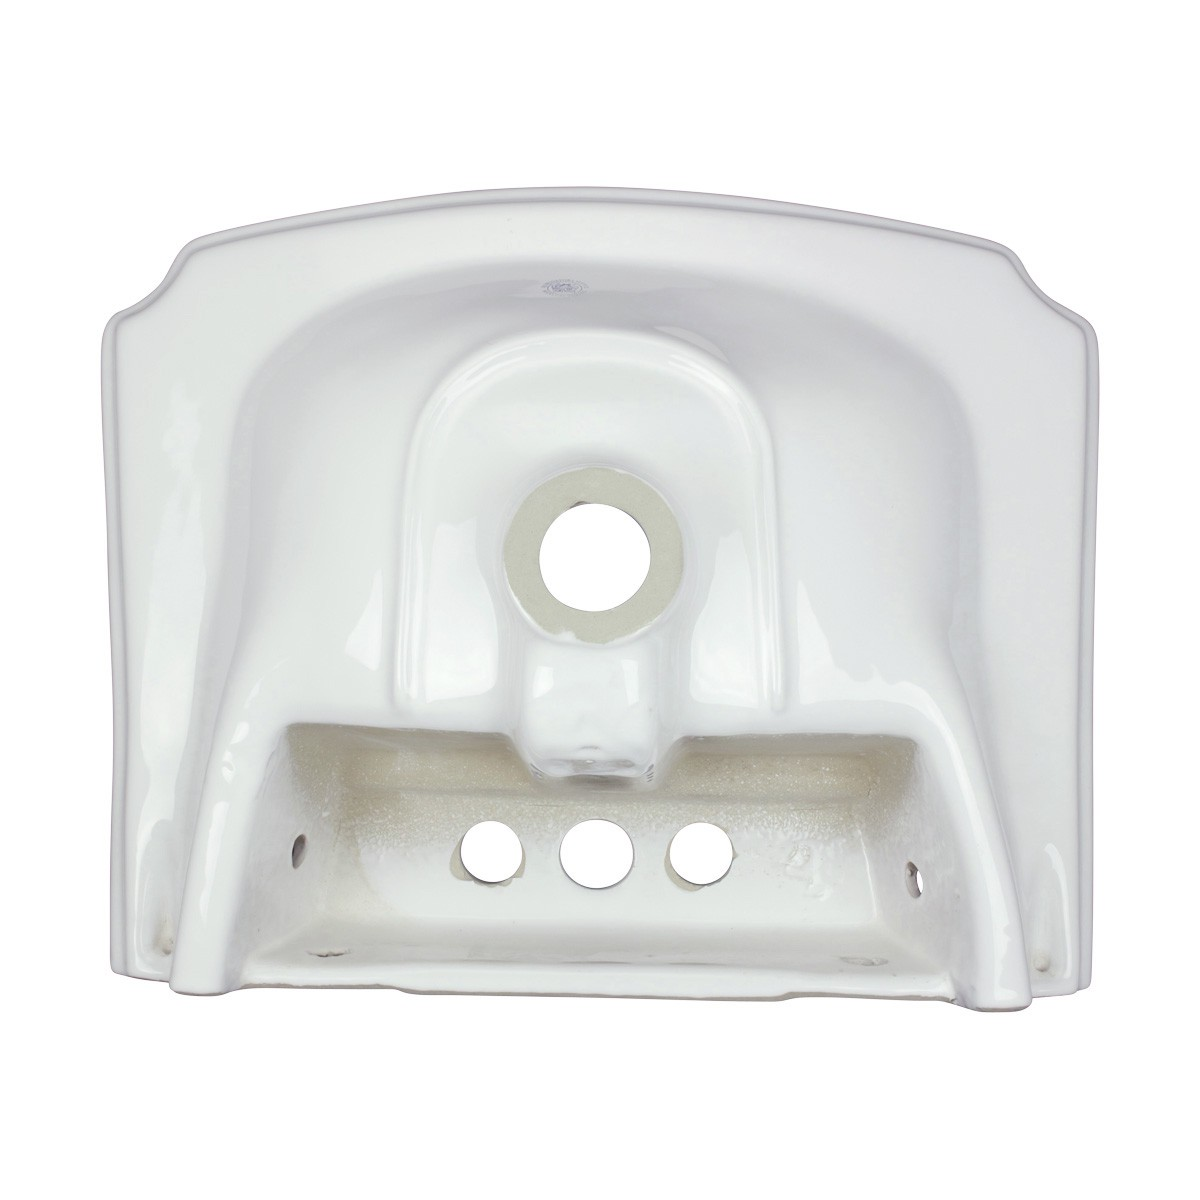 Renovators Supply Small Wall Mount Bathroom Sink White with Overflow 19 Small Wall Mount Bathroom Sink Wall Mount Bathroom Sink White Bathroom Sink